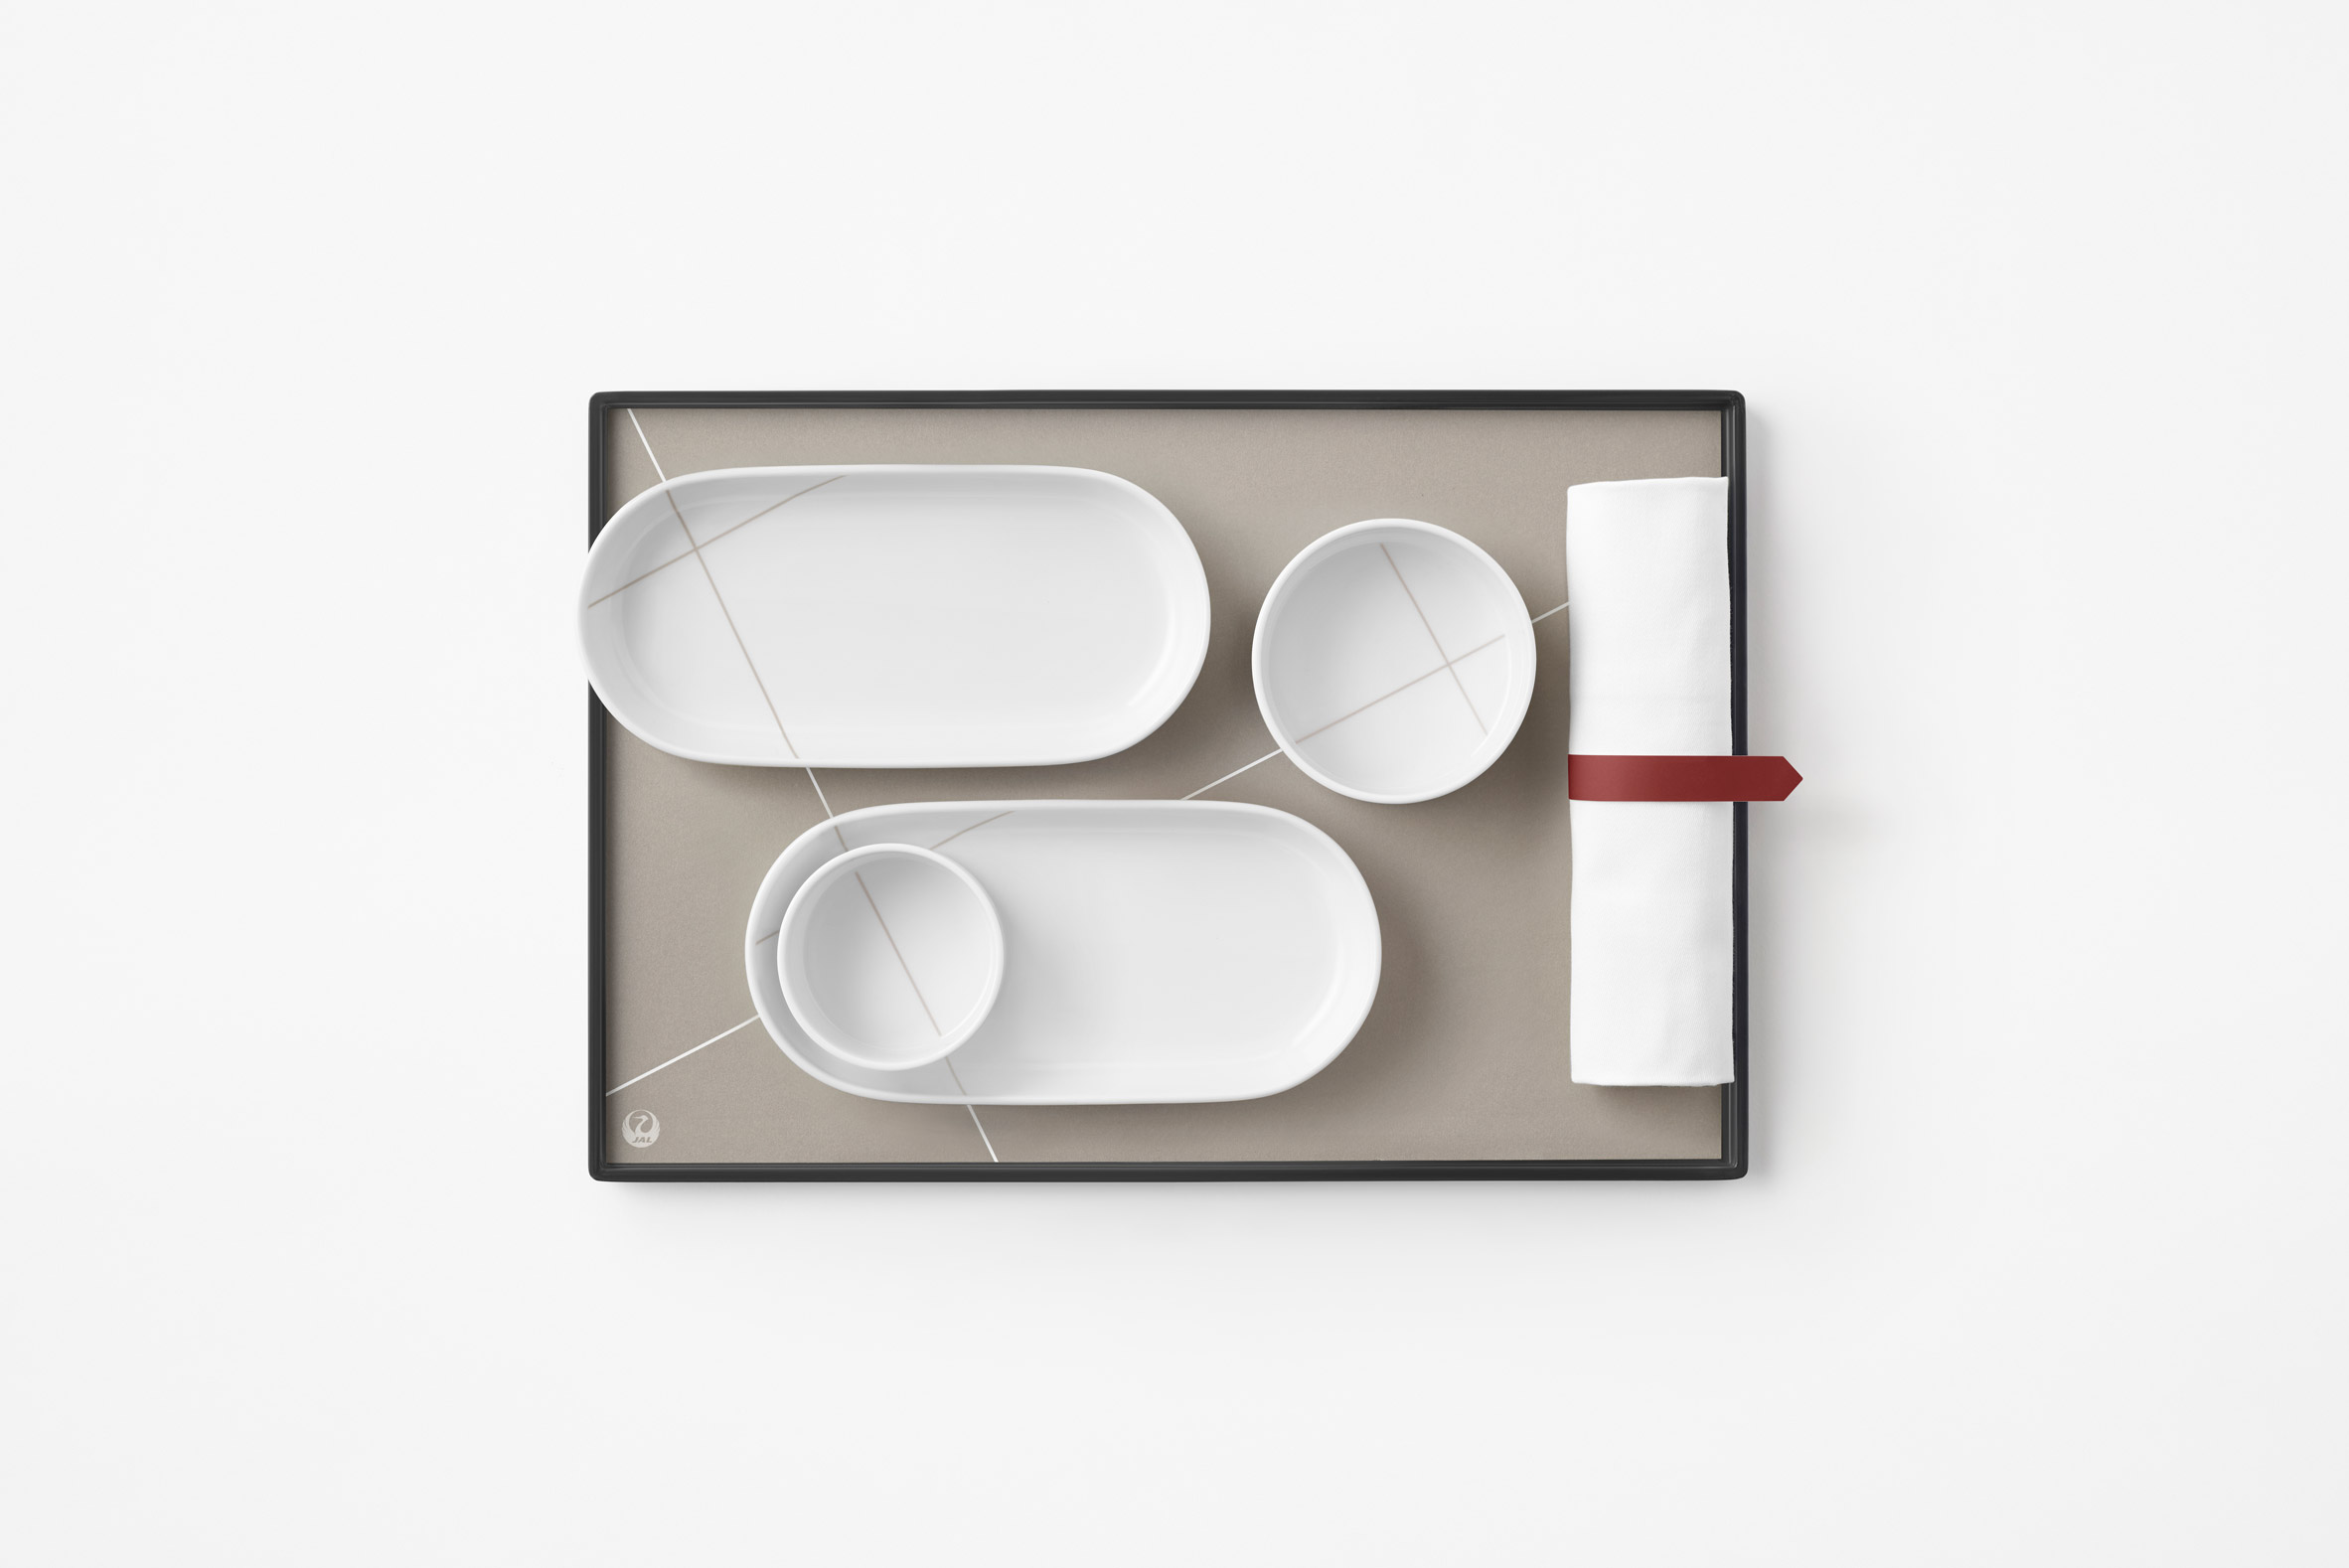 Inflight meal tray and dishes by Nendo for Japan Airlines